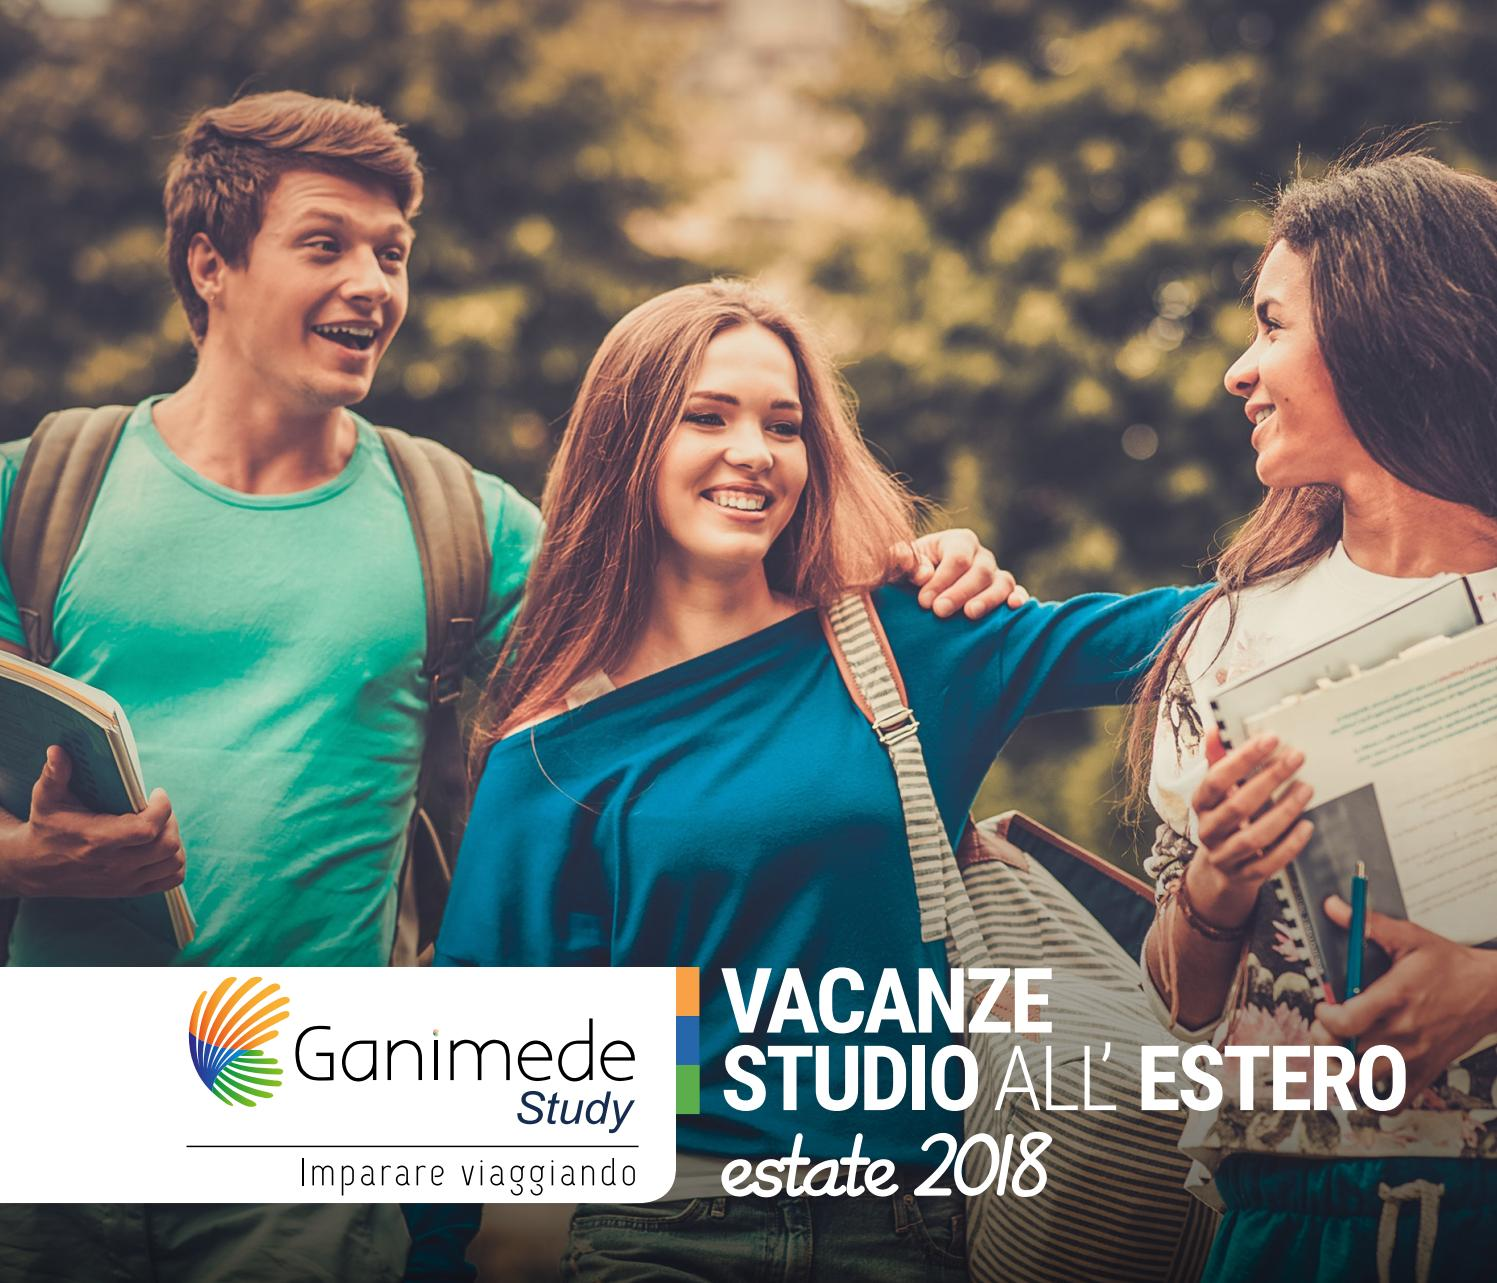 Vacanze Studio all\'Estero 2018 by Ganimede Viaggi - issuu